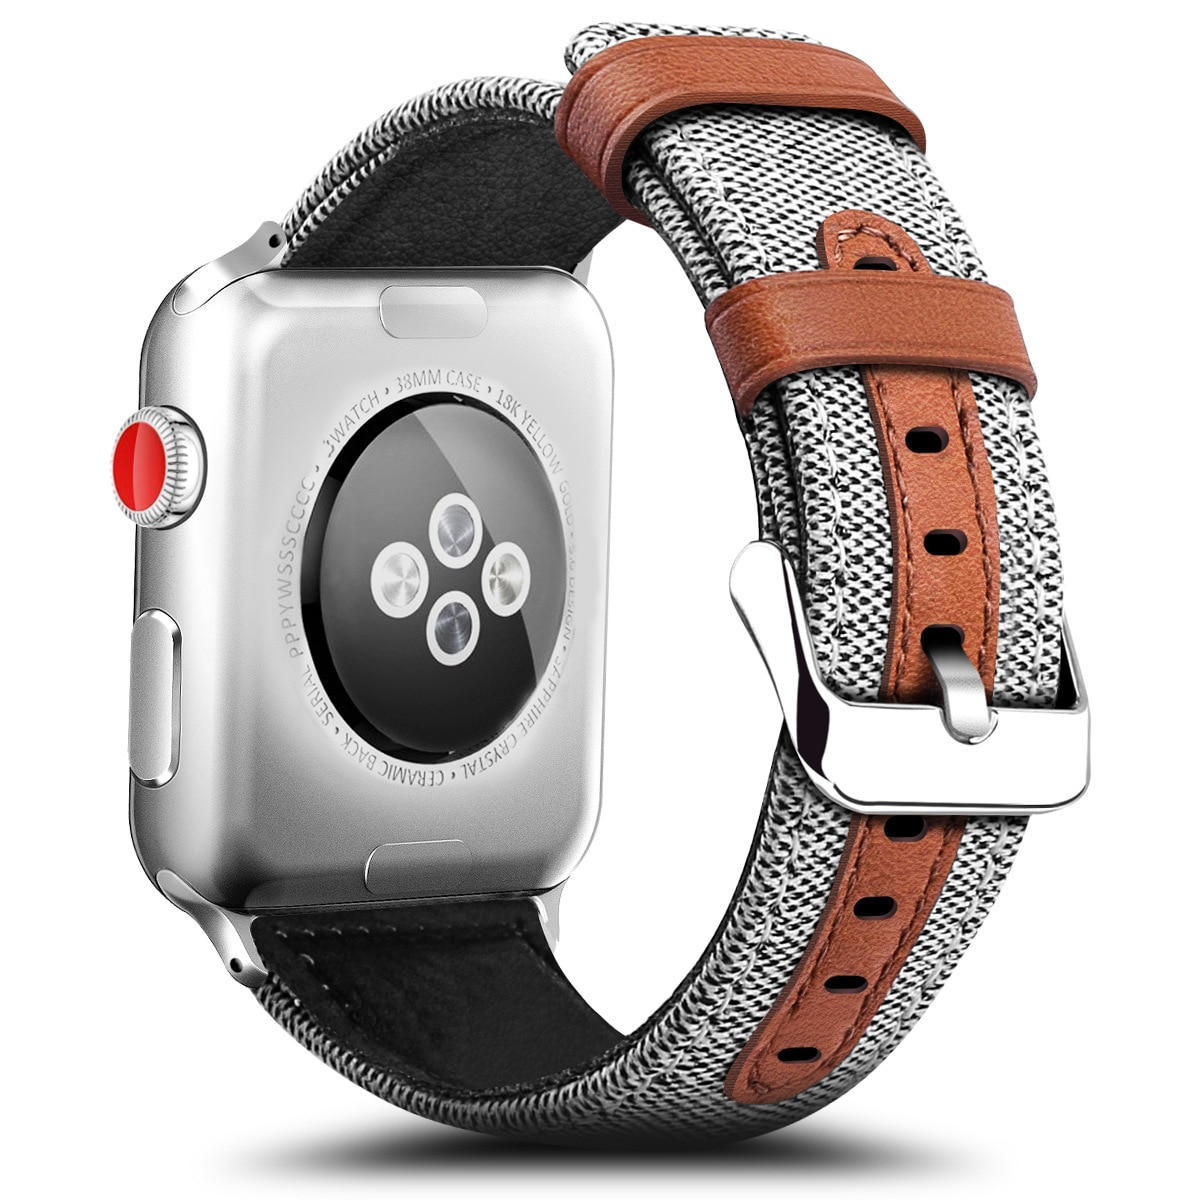 Fashion Fabric and Leather Band for Apple Watch 38mm 42mm Bracelet for Apple iWatch 40mm 44mm Series 3 4 5 6 SE Strap Wa